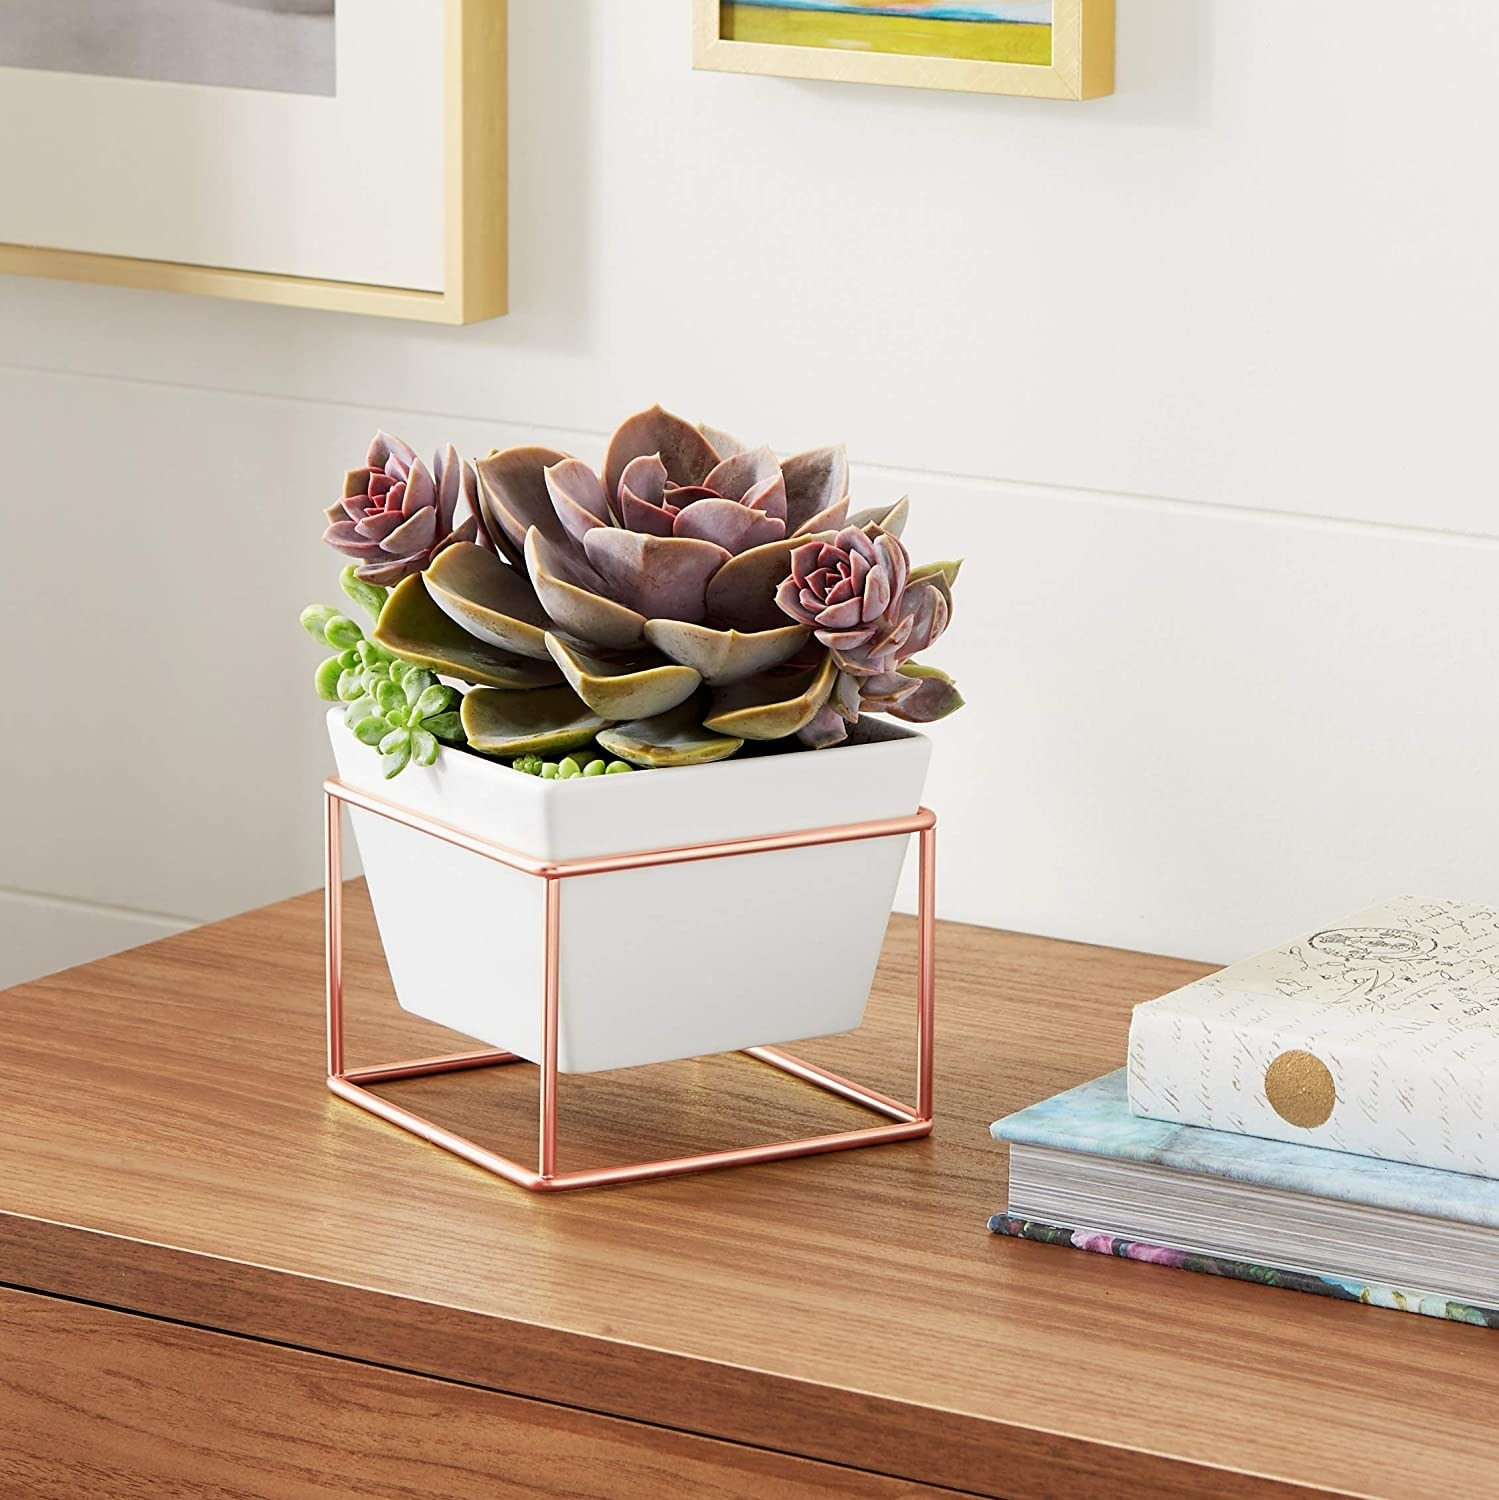 One of the planters containing a succulent on a wooden console table